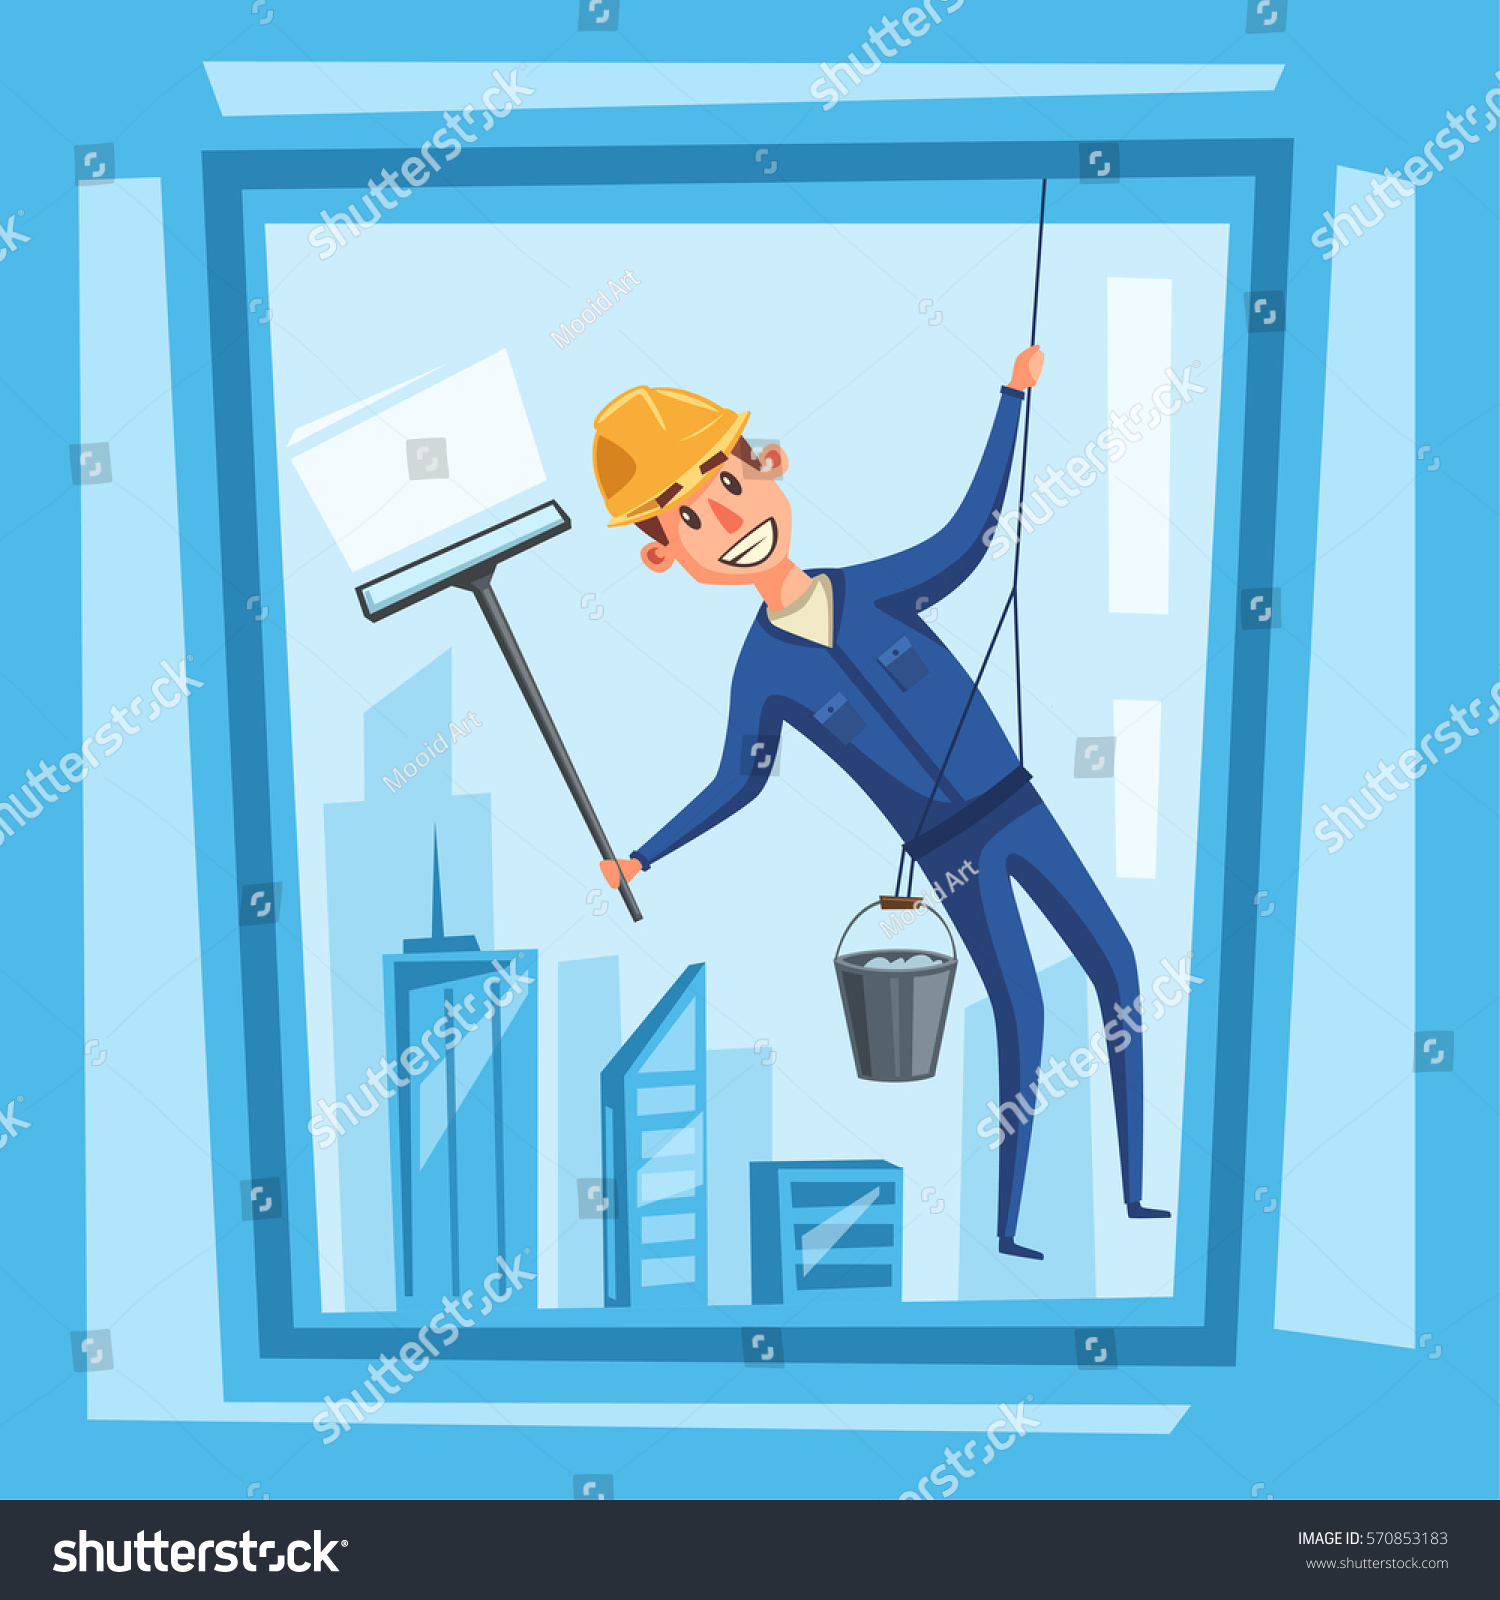 profesional worker cleaning windows cartoon vector stock vector 570853183 shutterstock. Black Bedroom Furniture Sets. Home Design Ideas